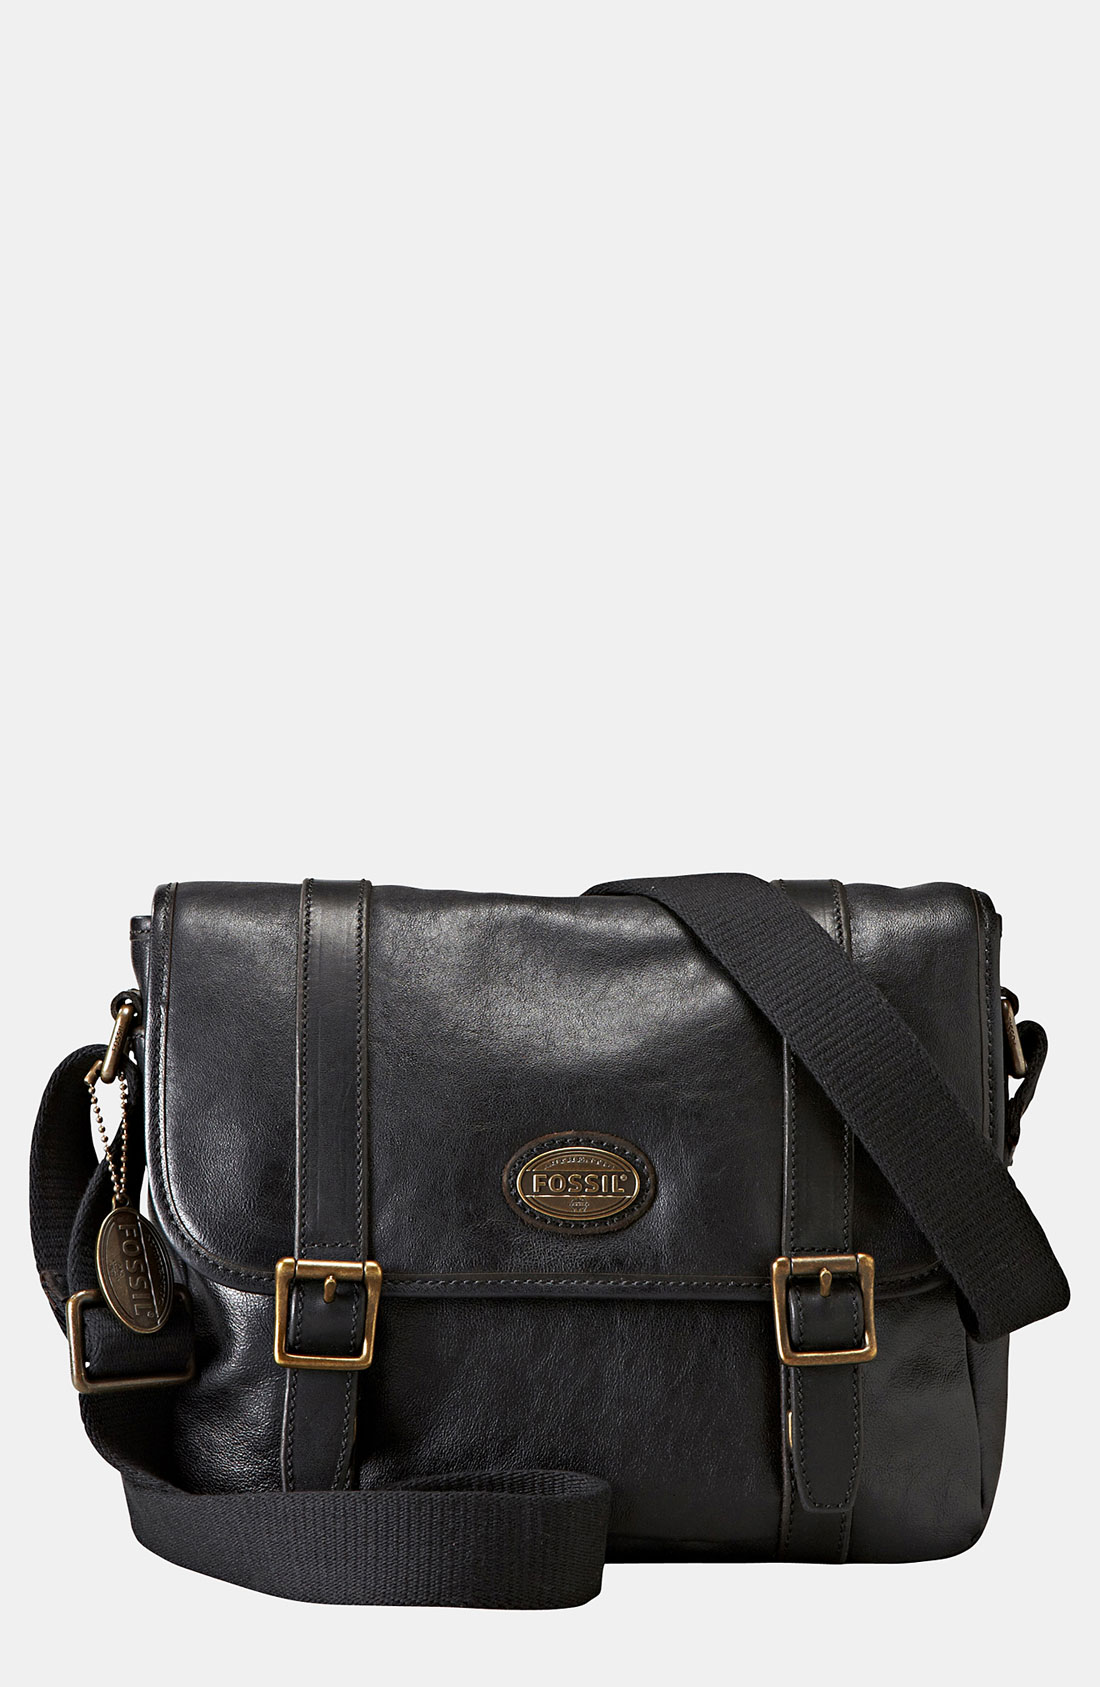 Beautiful Shoulder Bags Fossil Messenger Bags For Women Sale